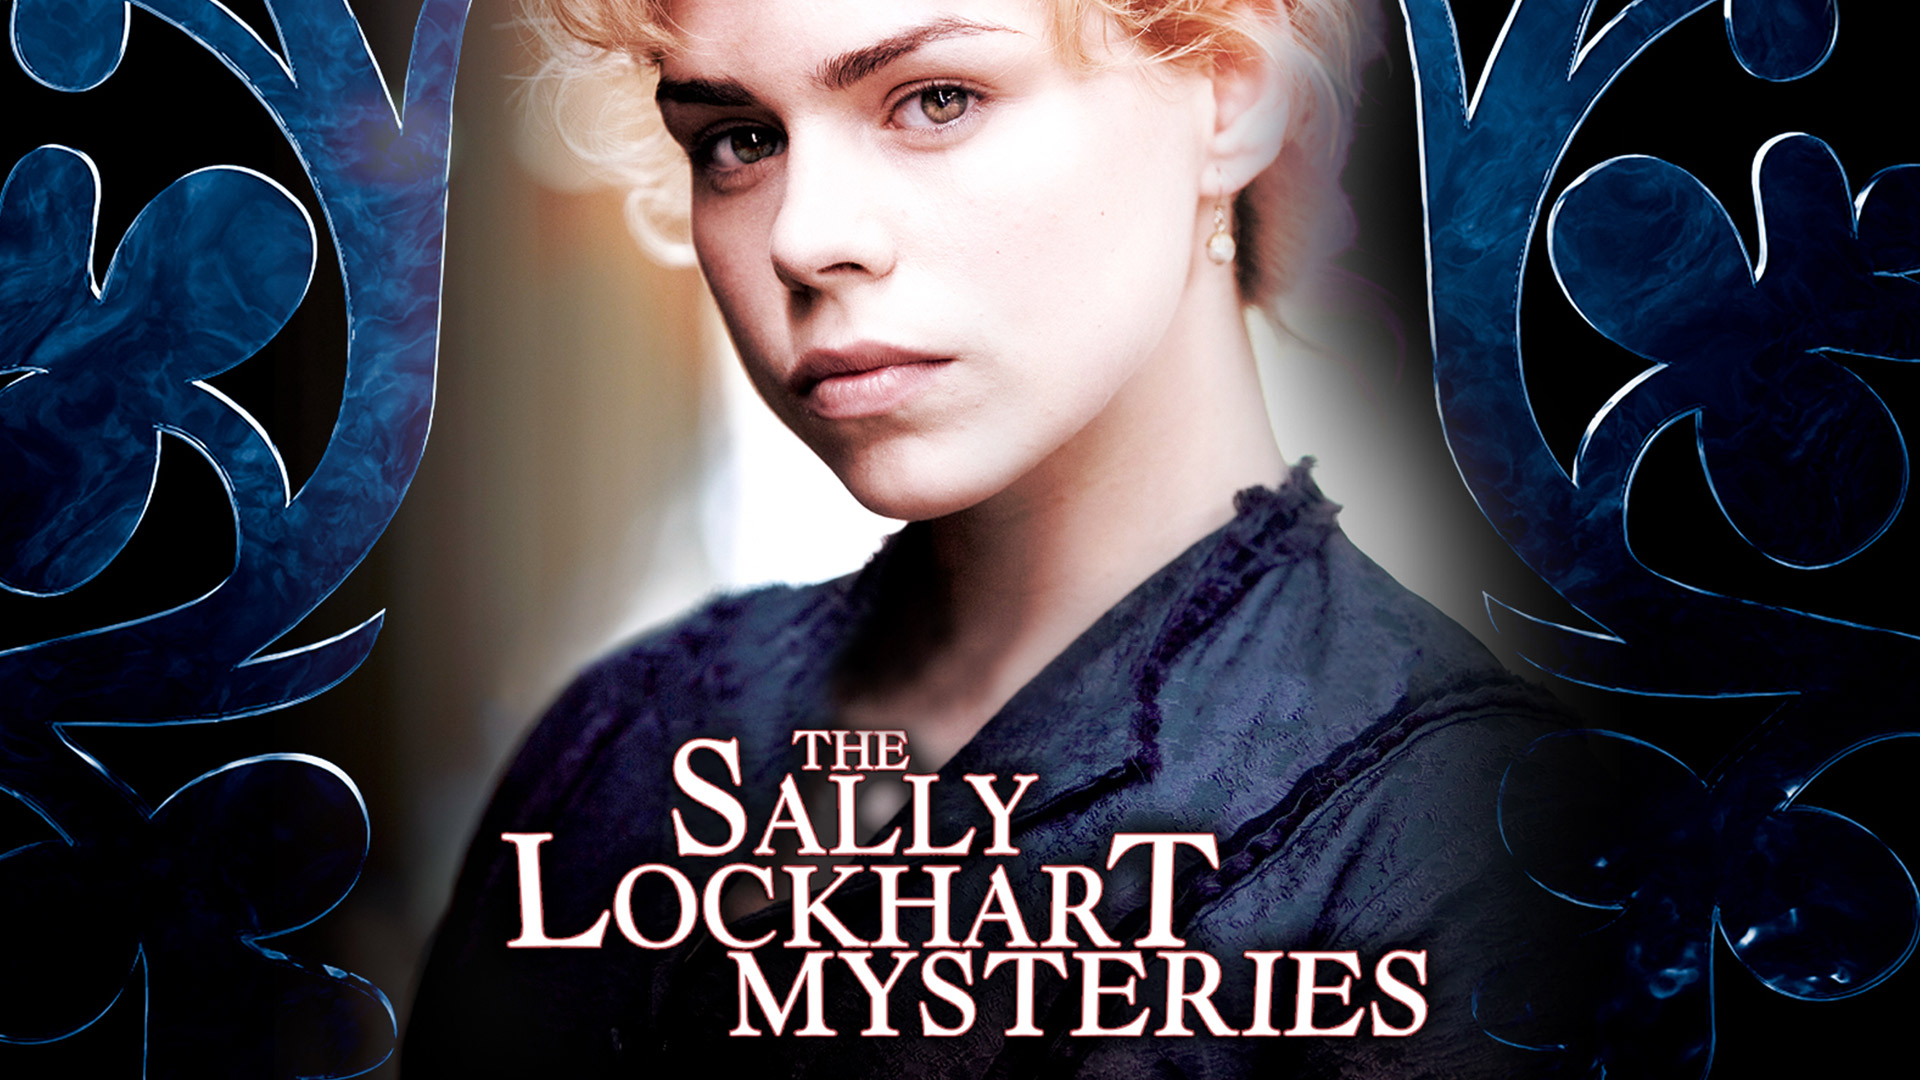 The Sally Lockhart Mysteries, Season 1